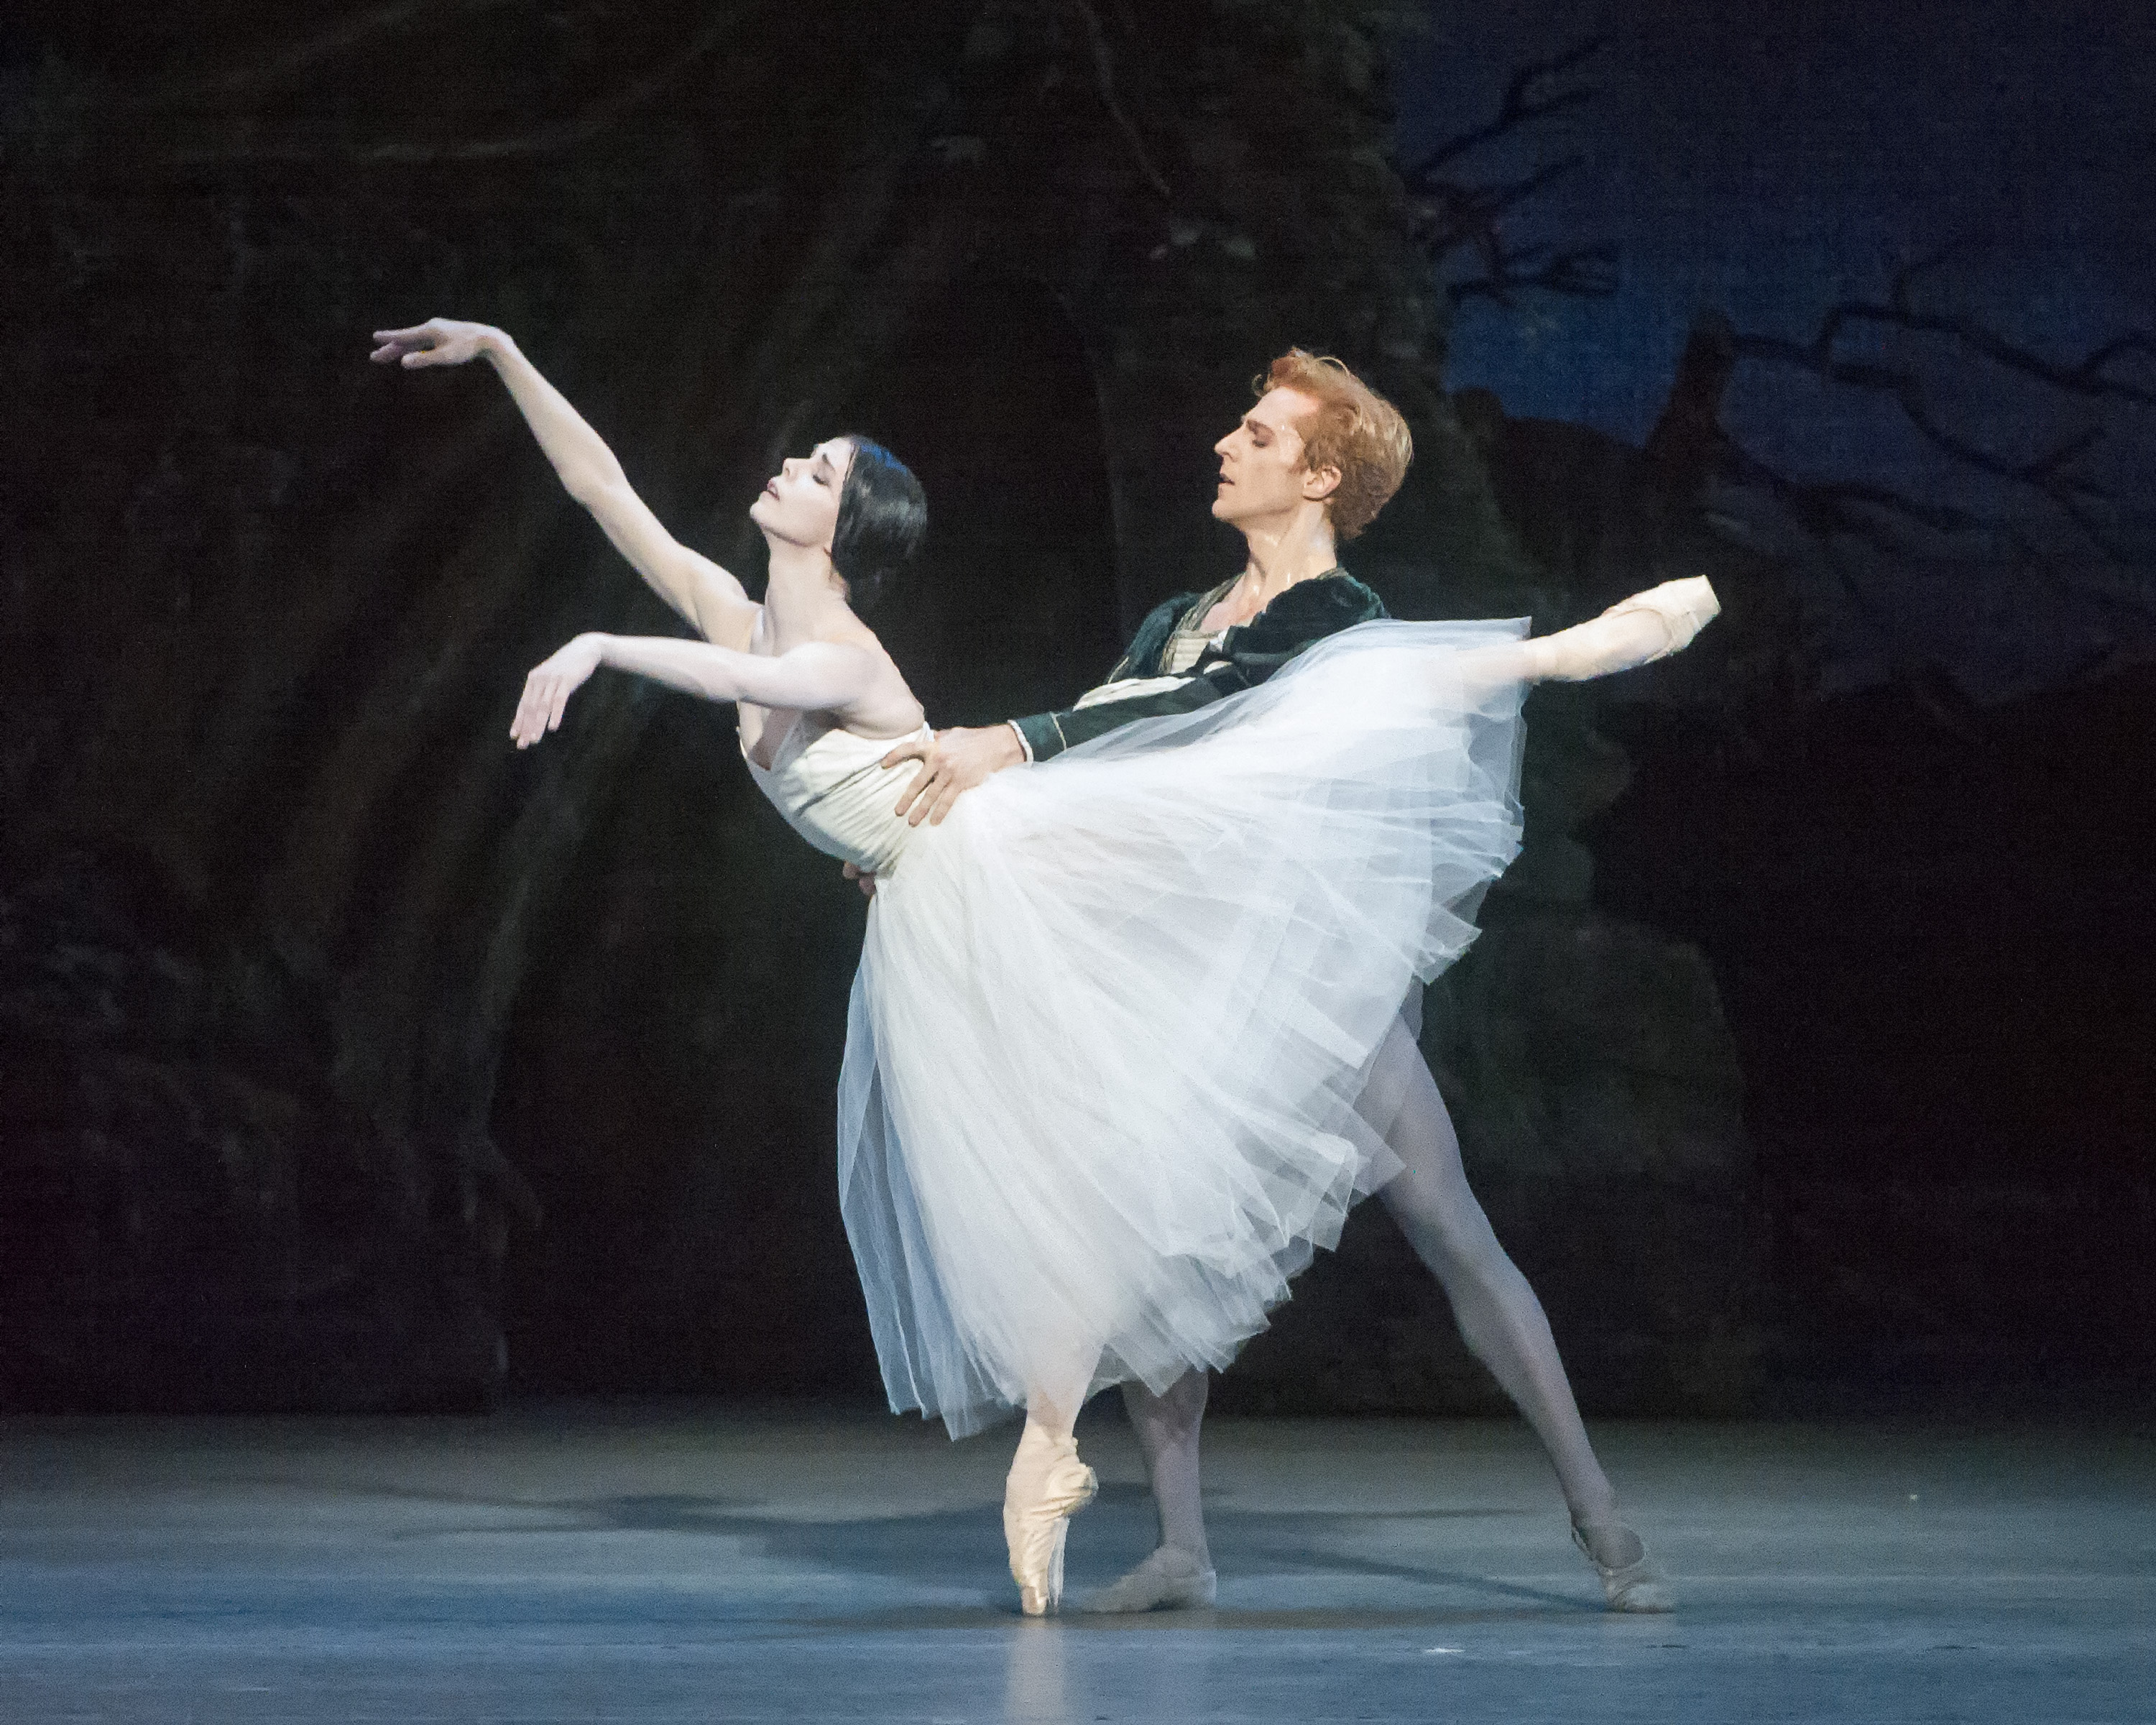 Jan 26, · Every day, Claire Kretzschmar of the New York City Ballet goes from class to rehearsal to performance at a breathless pace. Dance alongside her busy day.